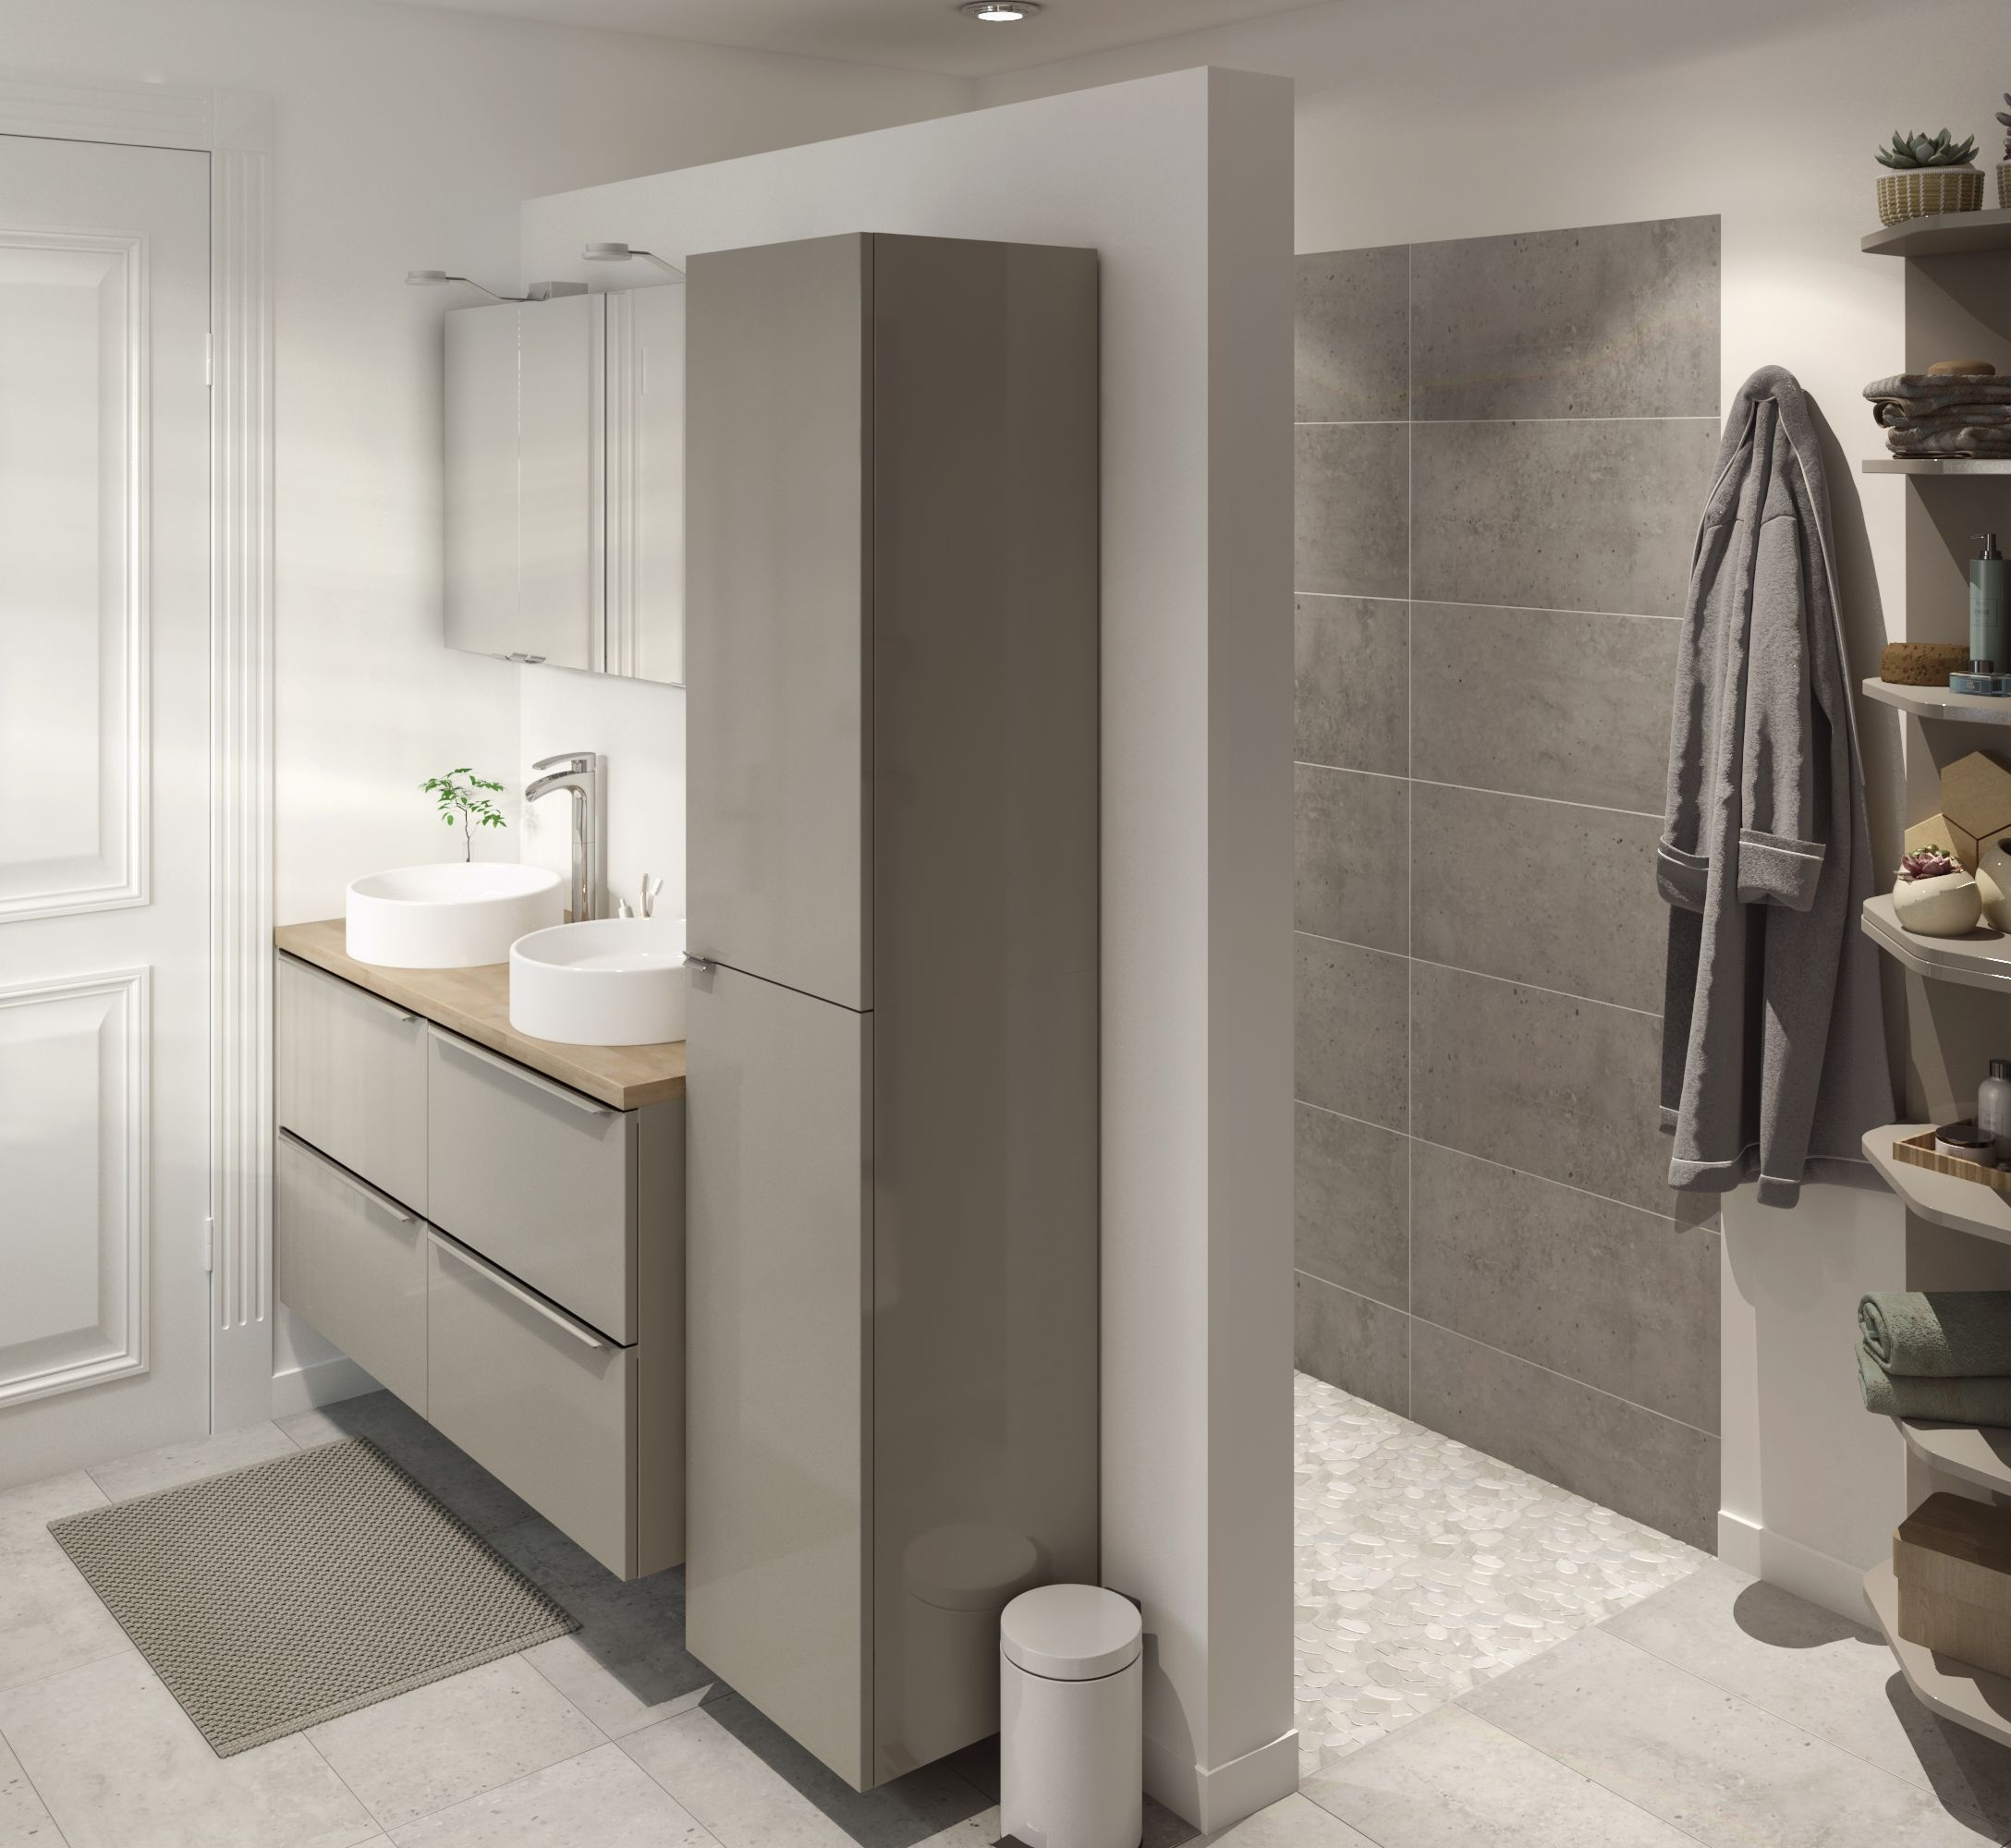 Stylish And Contemporary Is One Way To Describe B&Q'S 10+ B&Q Bathroom Design Service Ideas